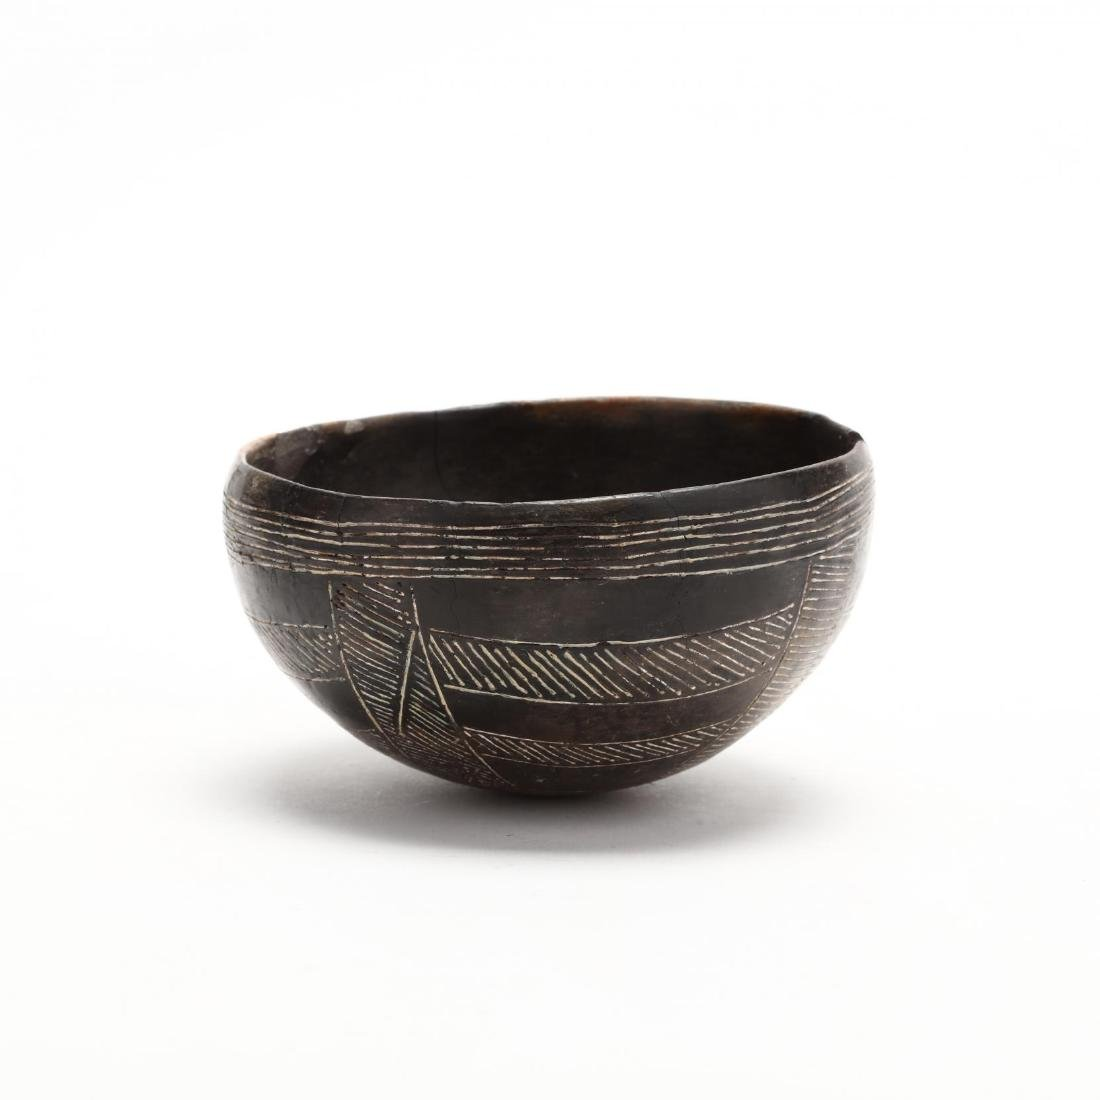 Cypriot Early Bronze Age Polished Black Ware Bowl - 4